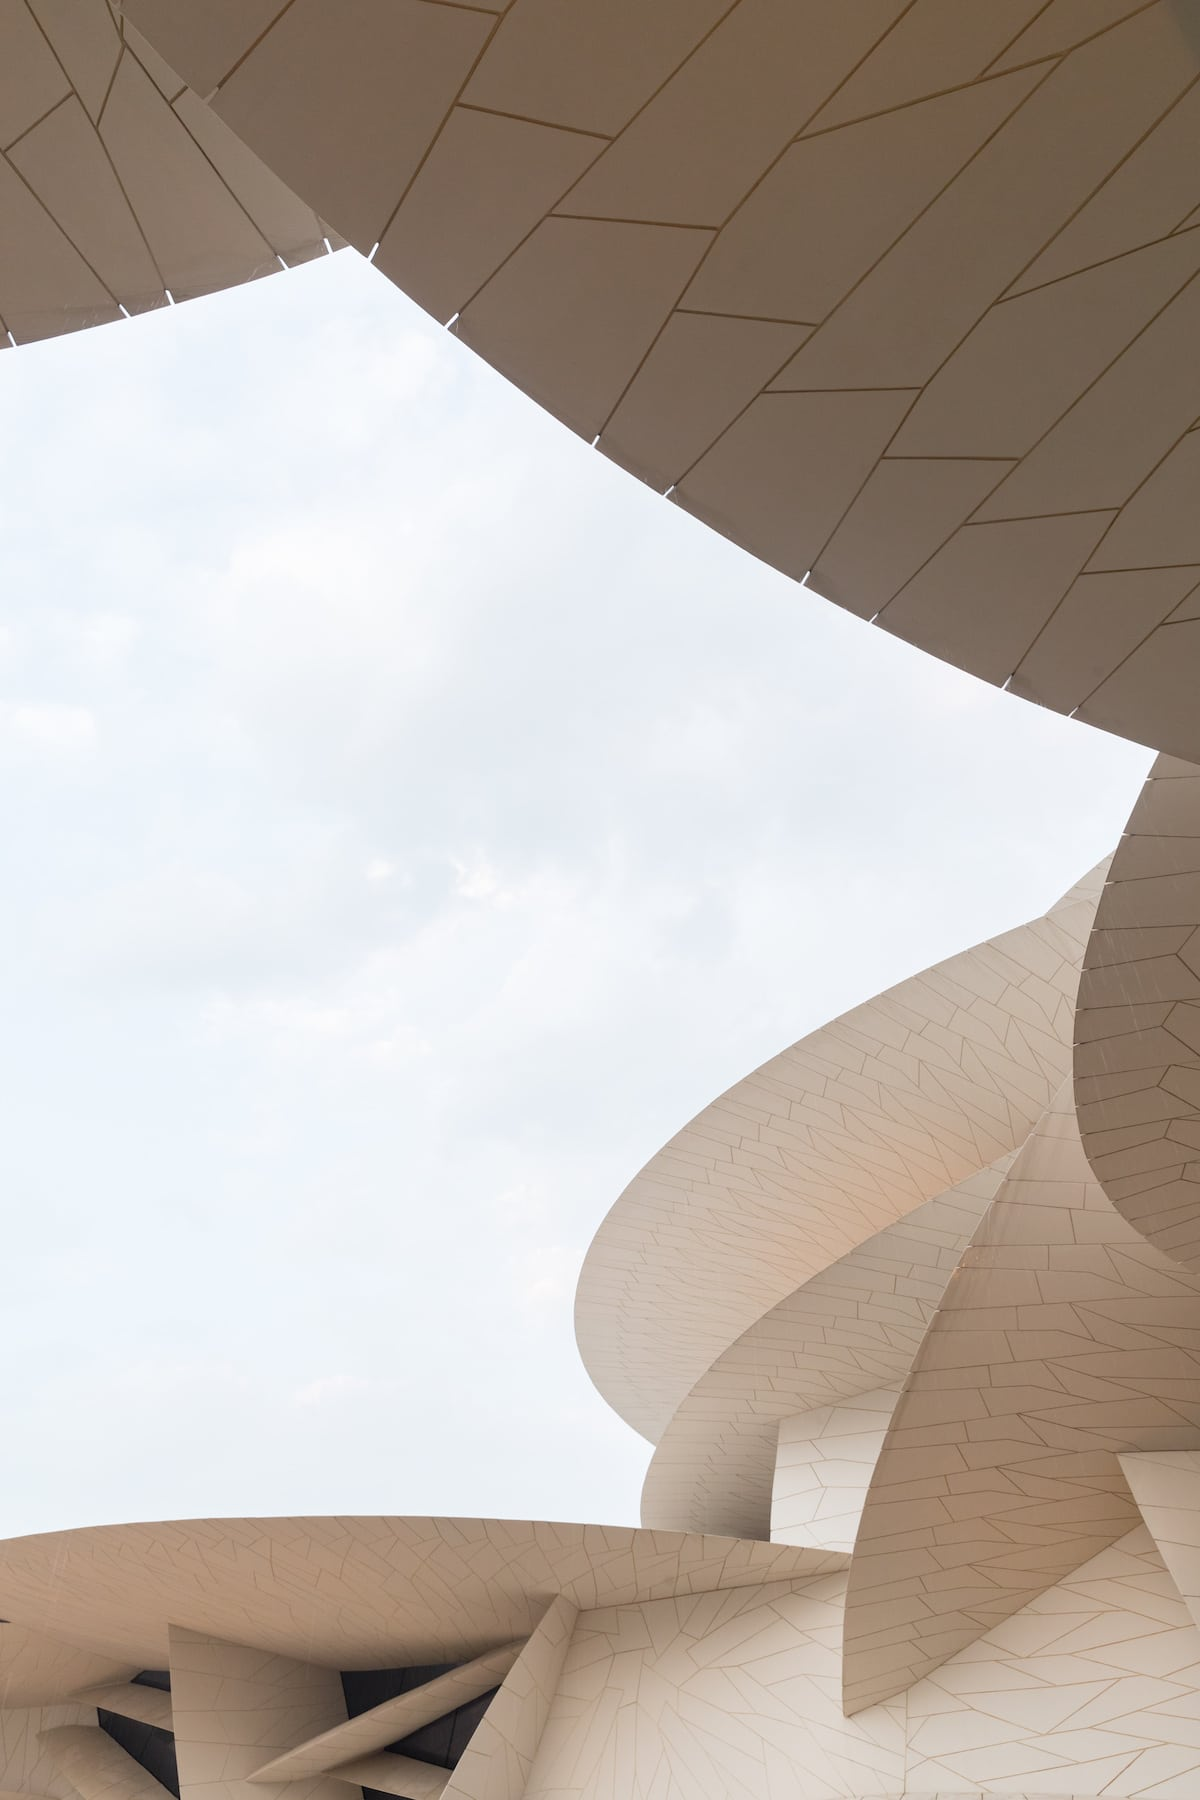 Middle Eastern Contemporary Architecture in Doha